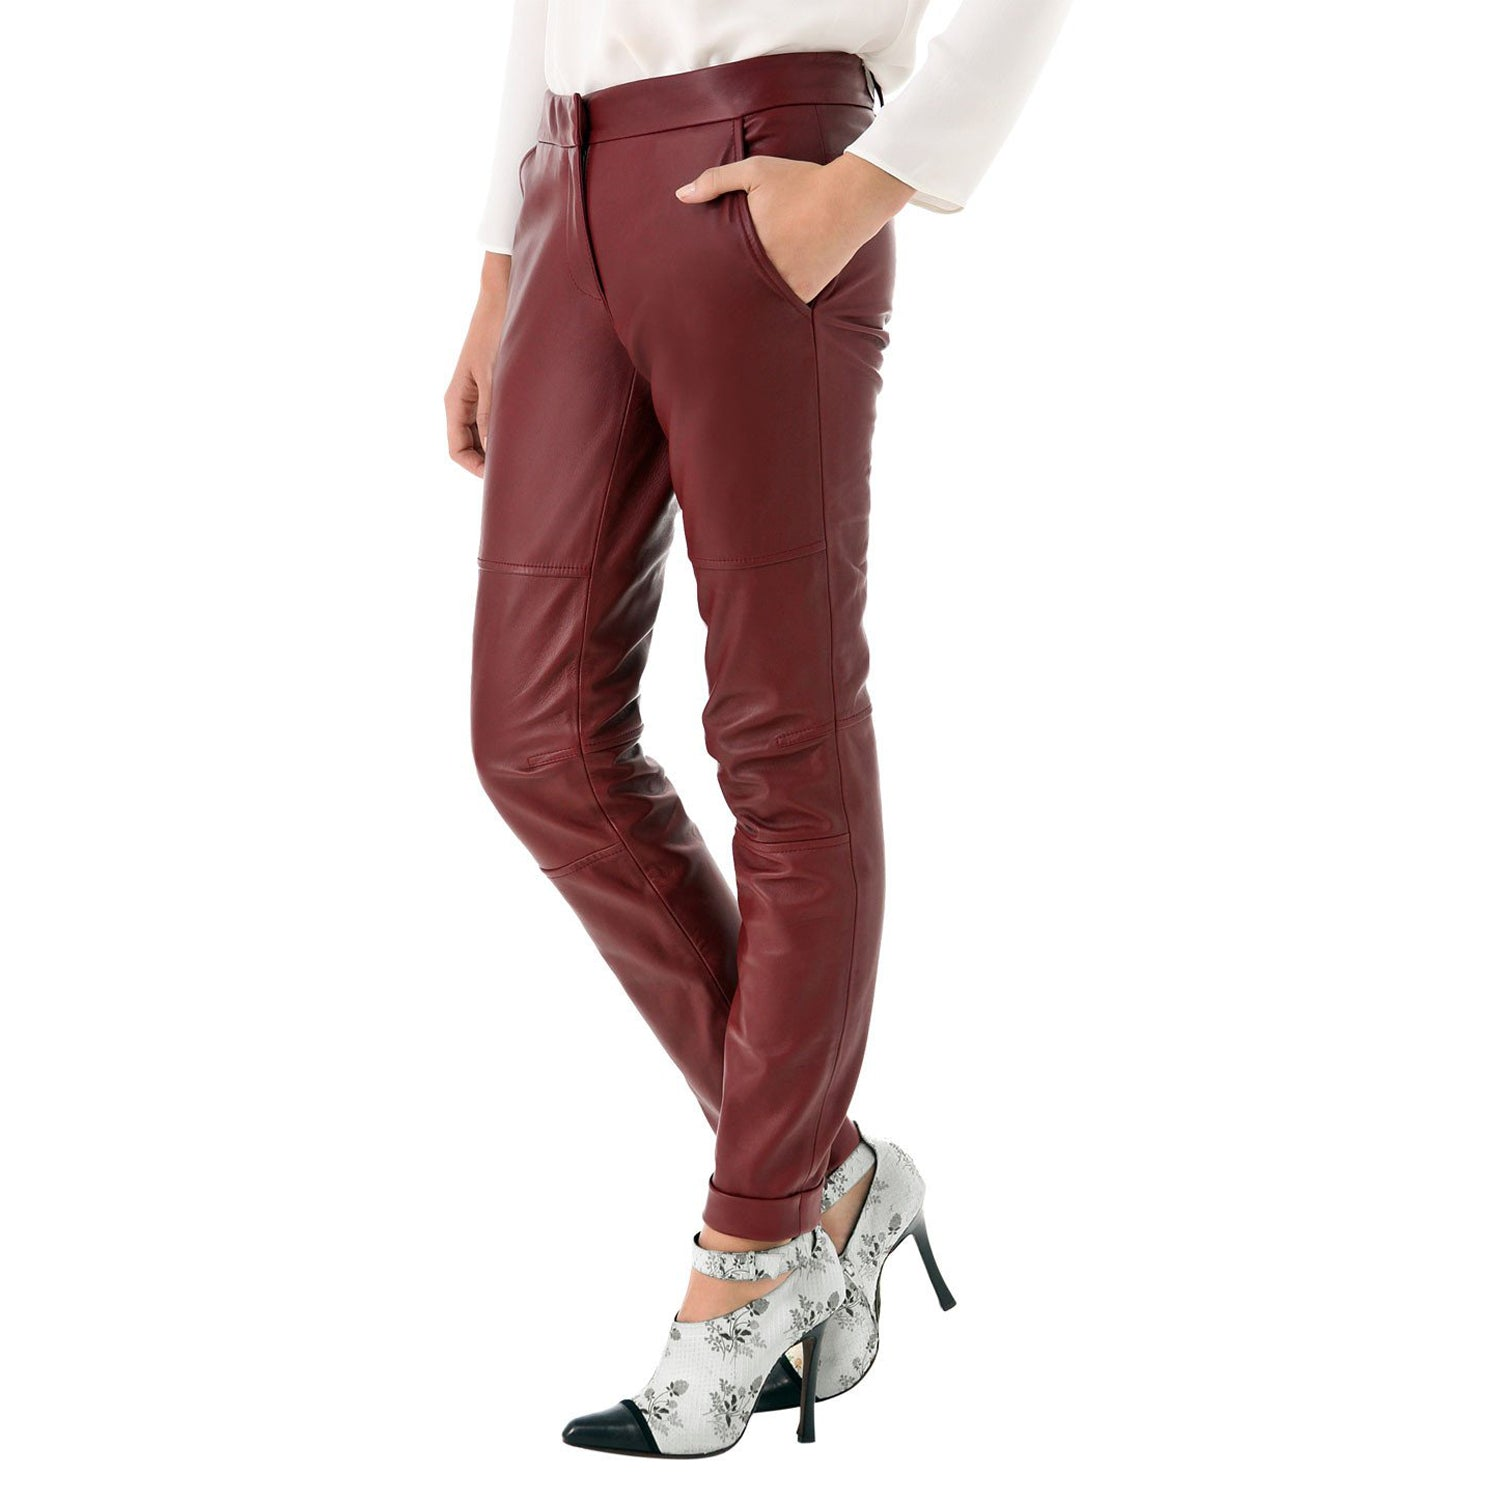 Cherry leather pants with belt (style #15) - Lusso Leather - 1